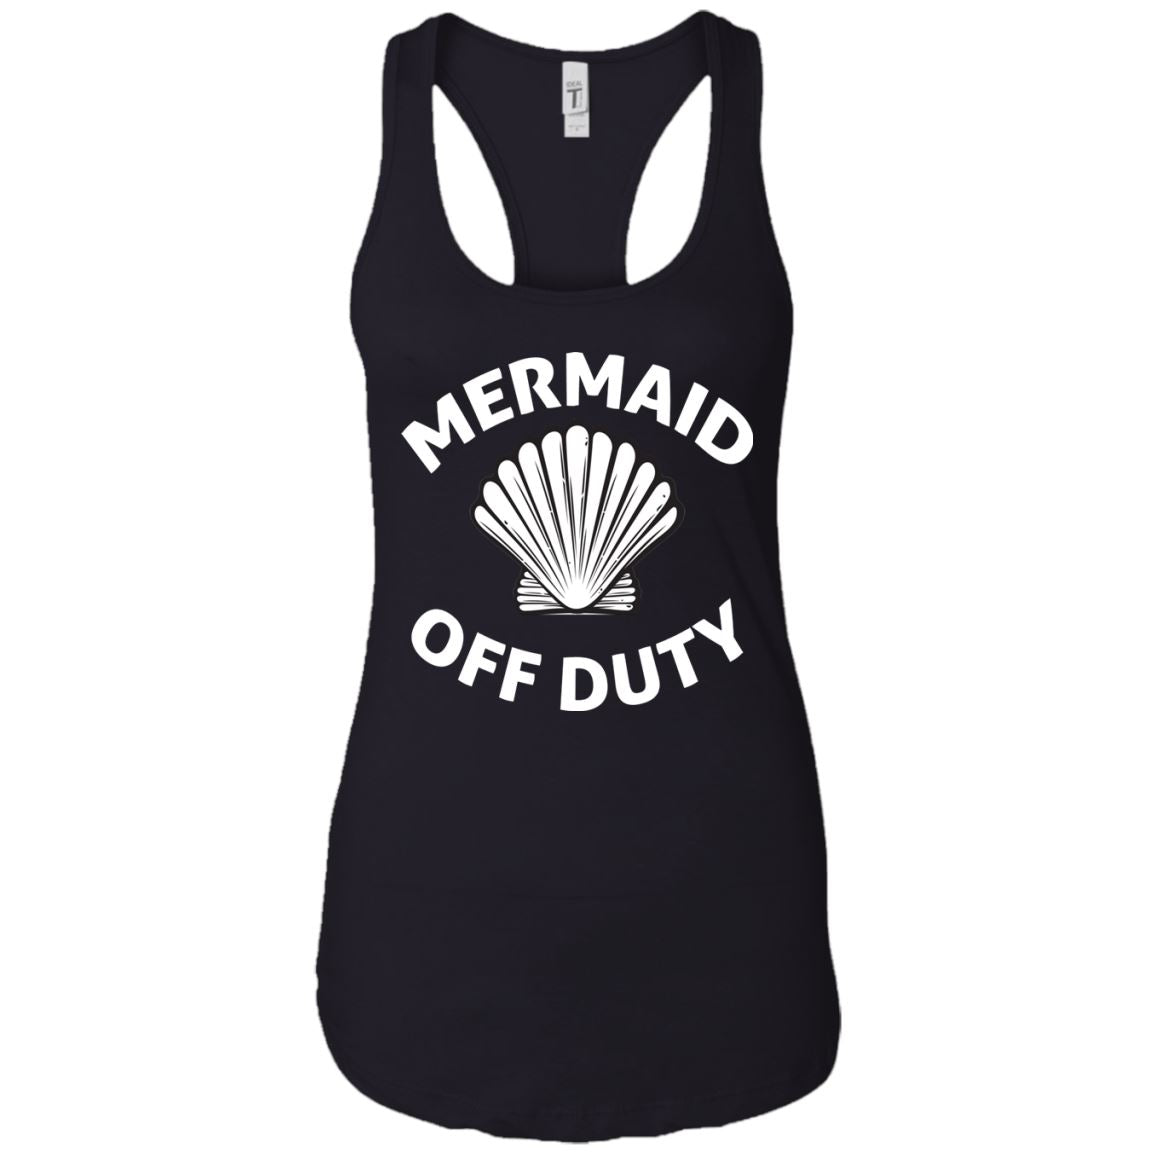 Mermaid Off Duty Ladies Racerback Tank Mermaid Apparel Black X-Small